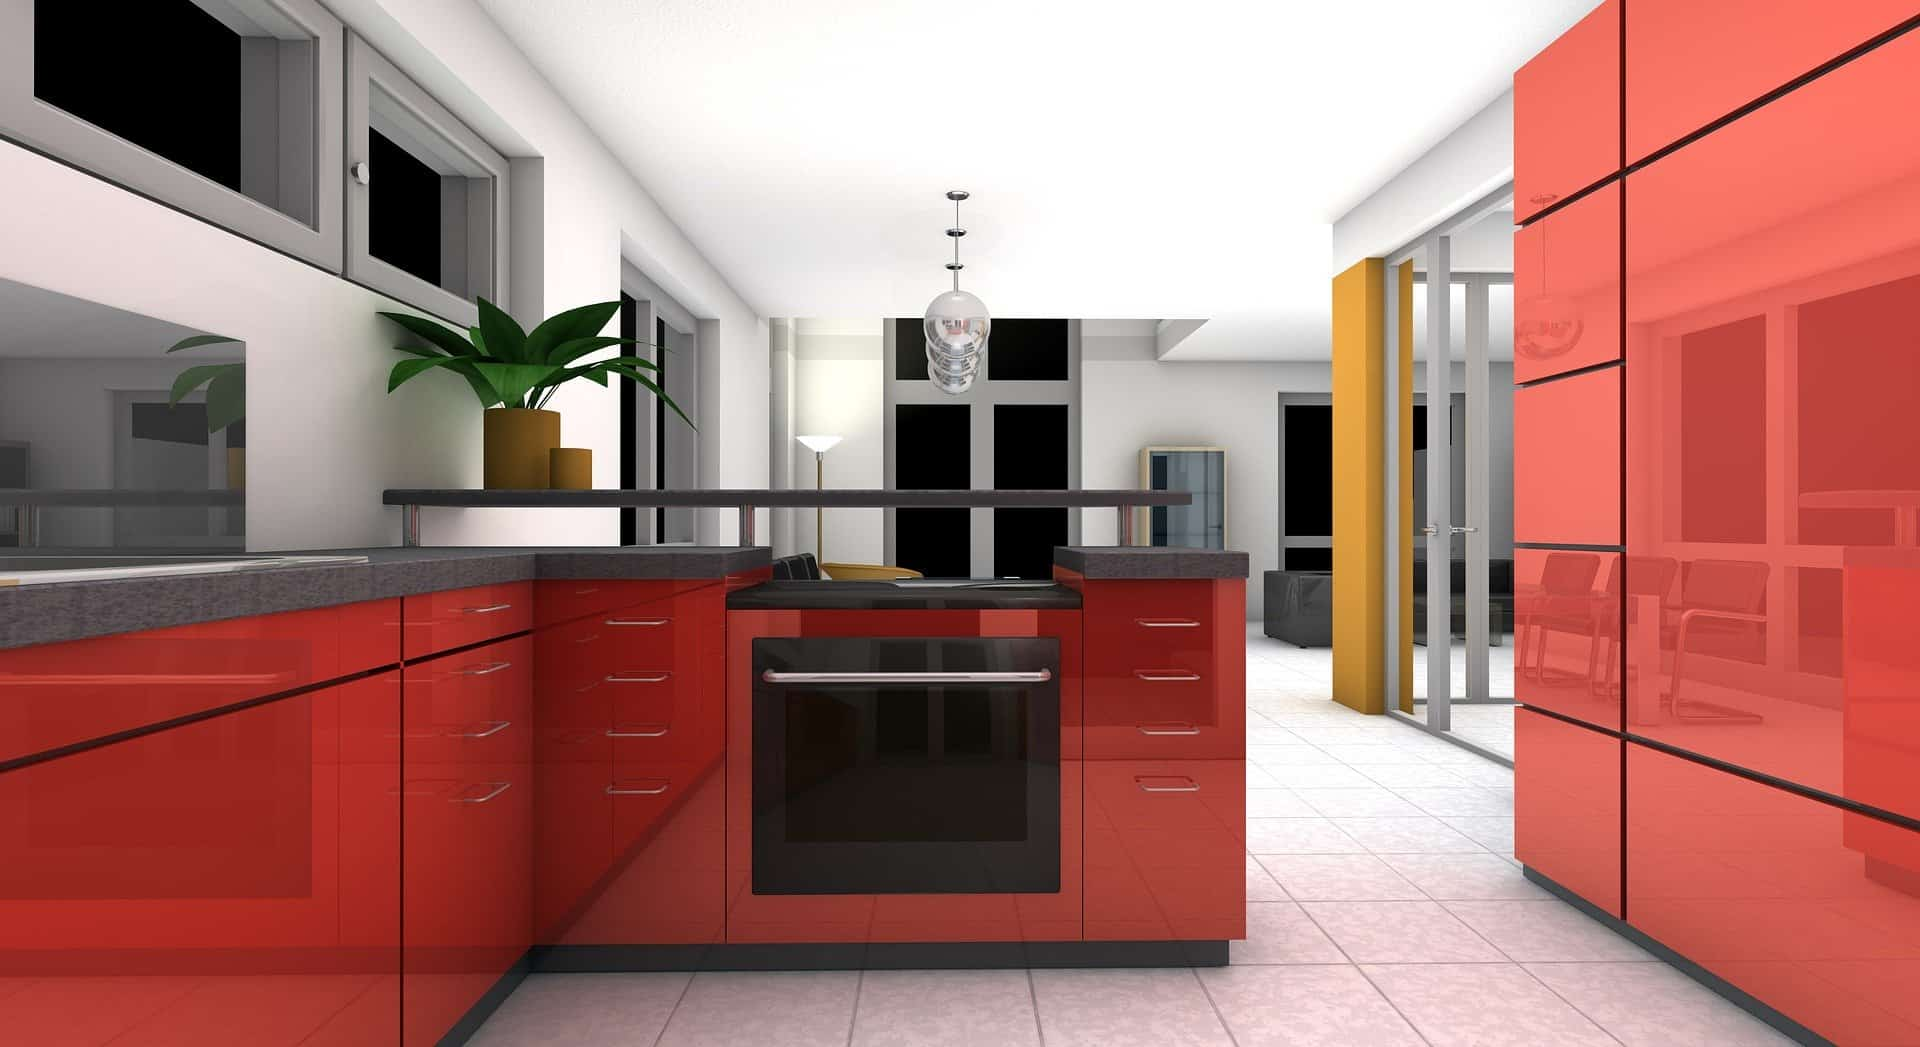 How To Add a Modern Touch to Your Small Kitchen